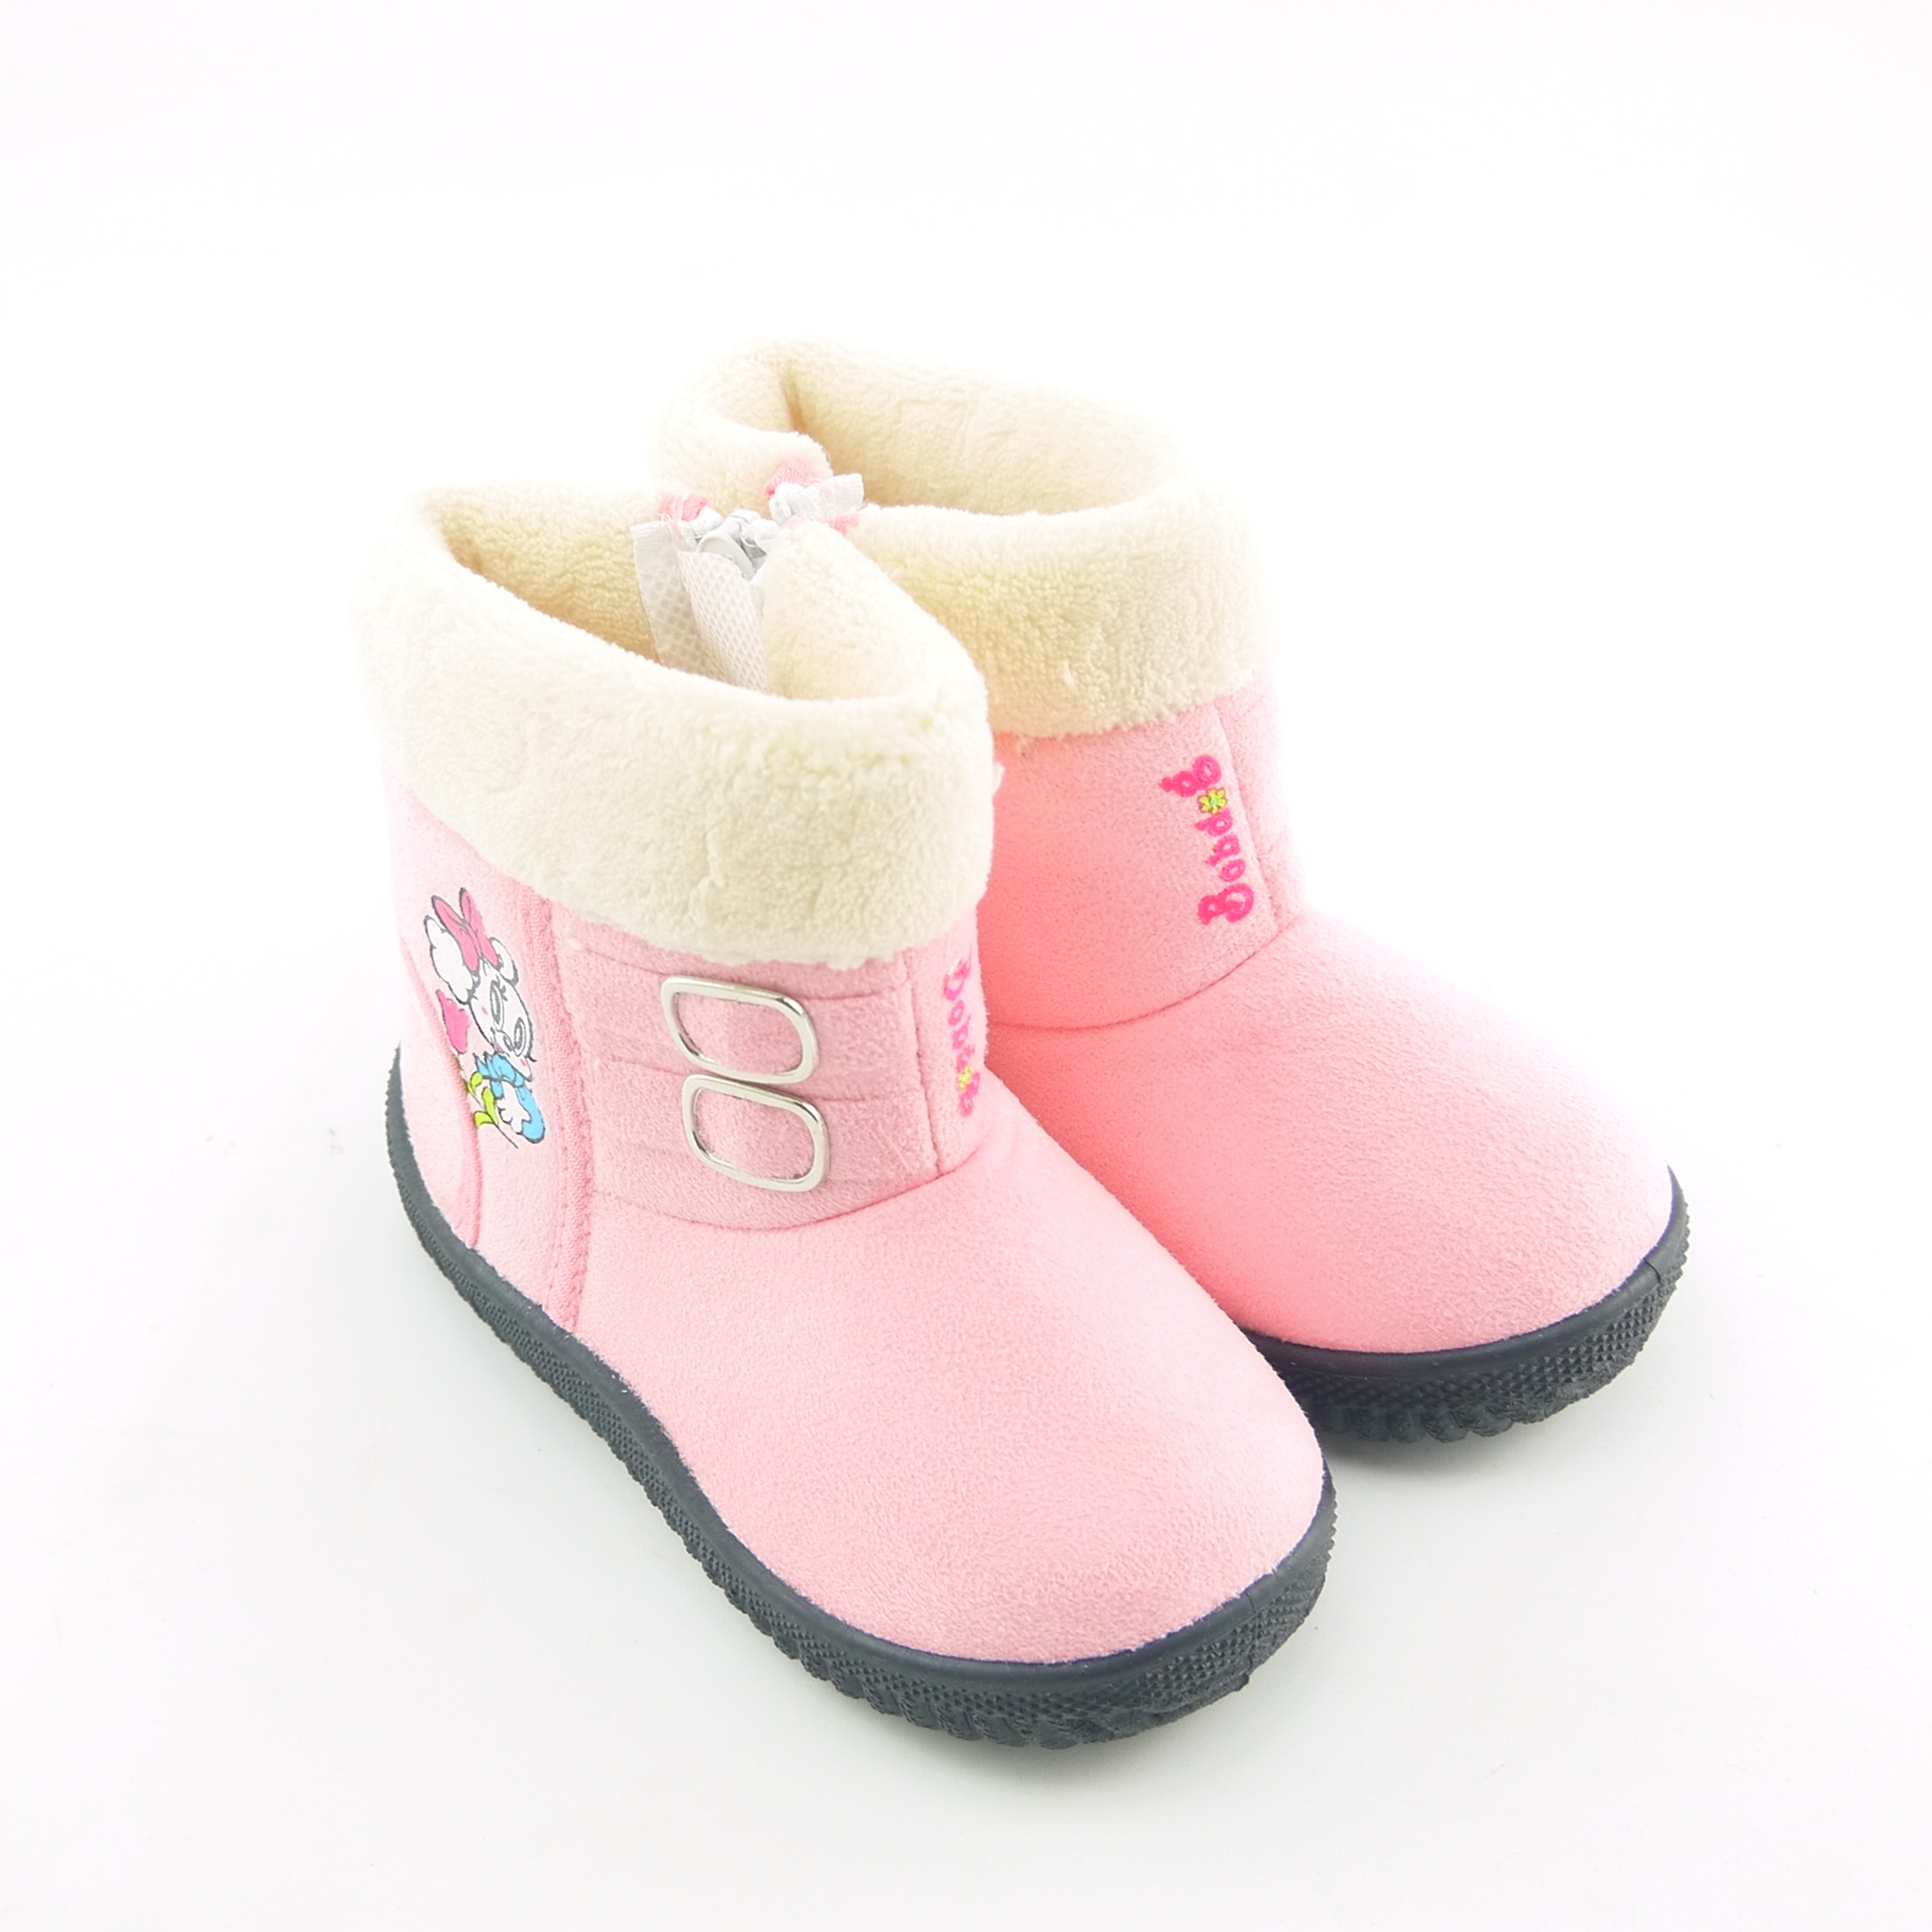 Kids Boys Winter Warm Fur Lined Ankle Boots Chelsea School Buckle Toddler Shoes